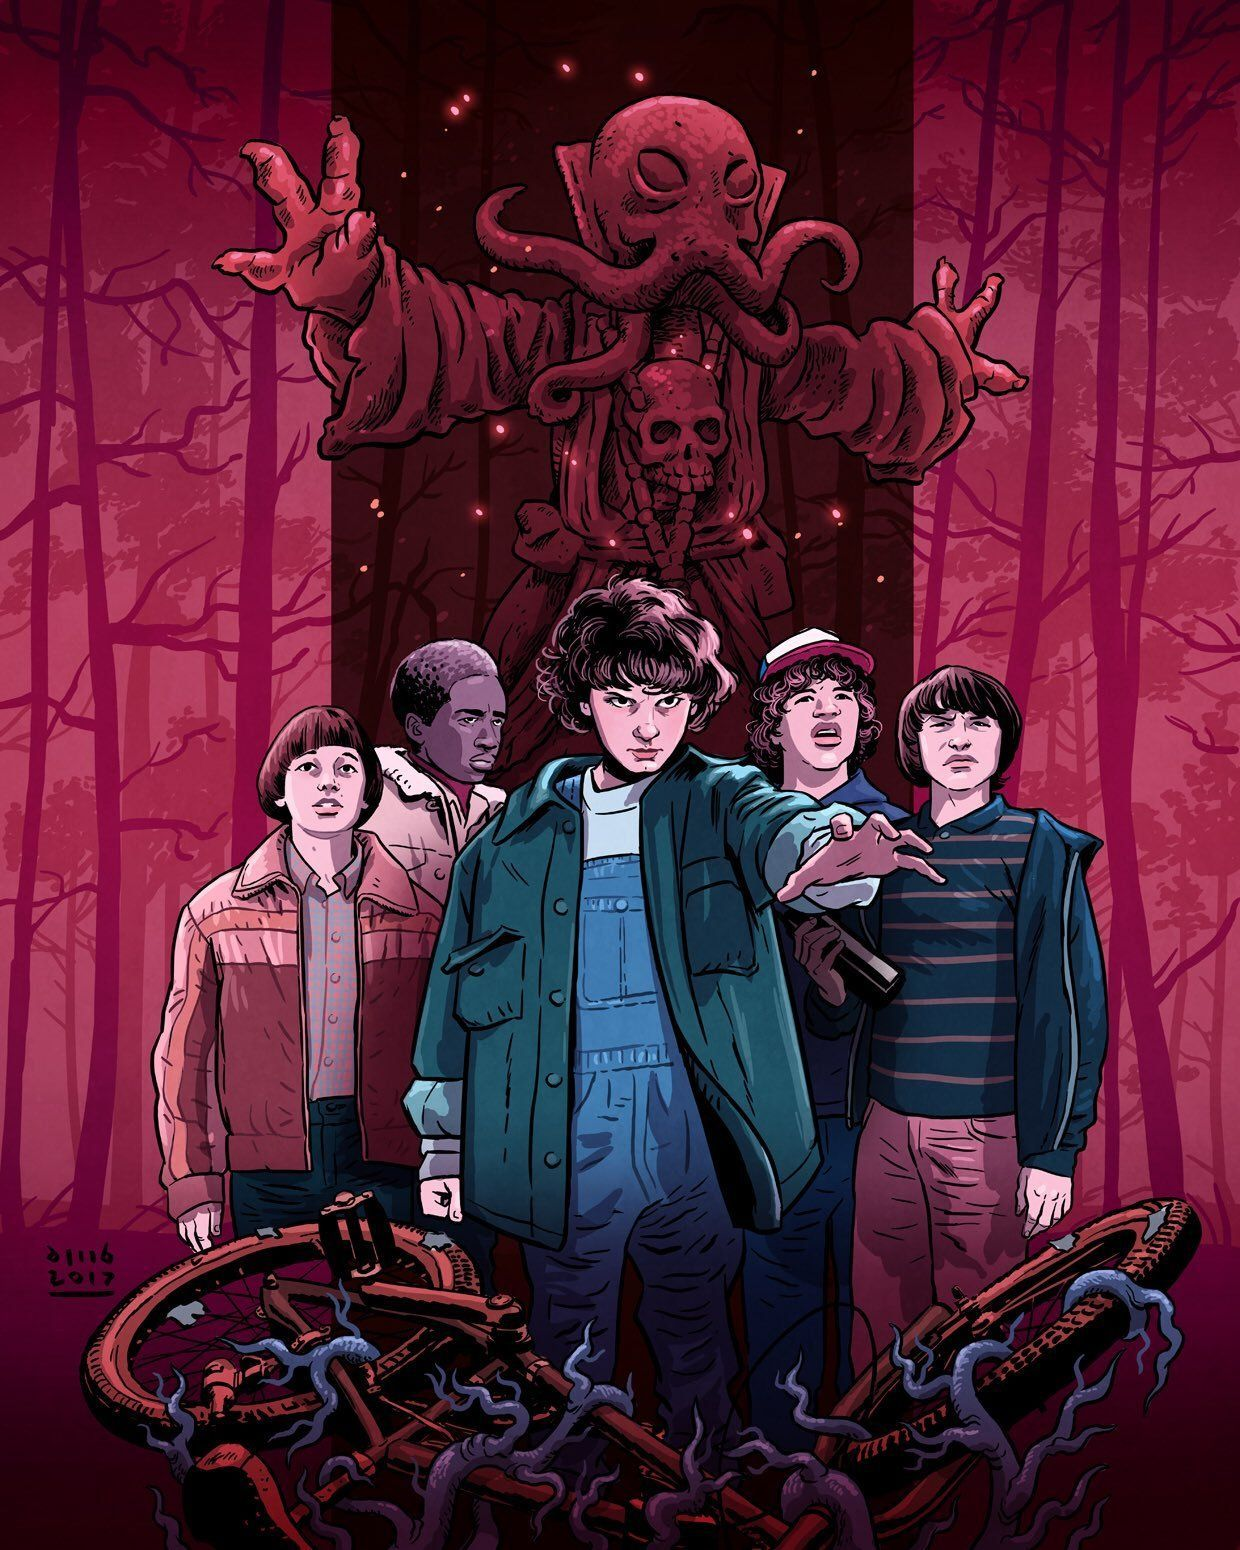 Hd Stranger Things Phone Wallpapers Objective Is To Serve Astonishing Hd Wallpapers To Many Str Stranger Things Poster Stranger Things Fanart Stranger Things 2